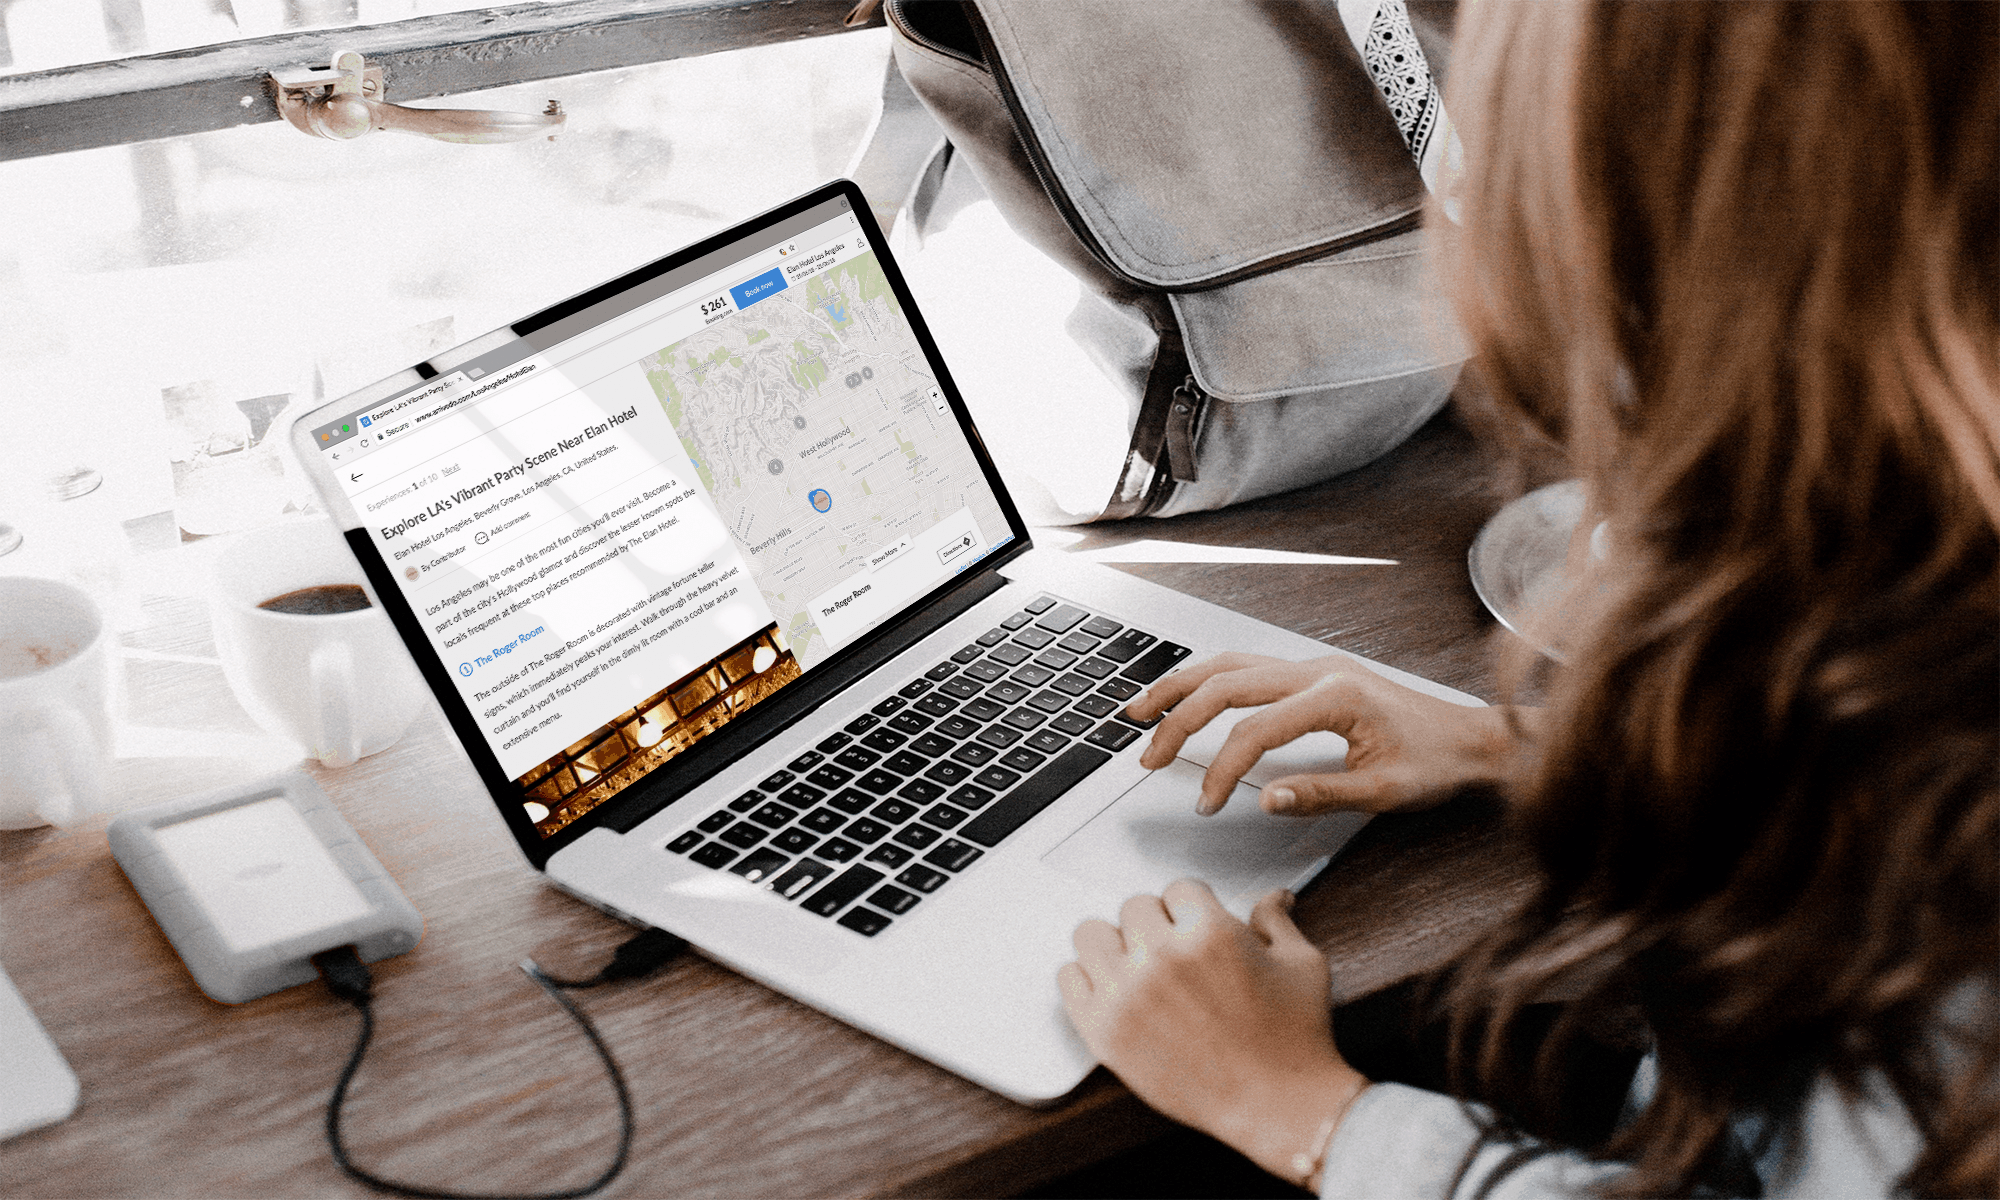 Arrivedo makes finding local activities near hotels easy to do!